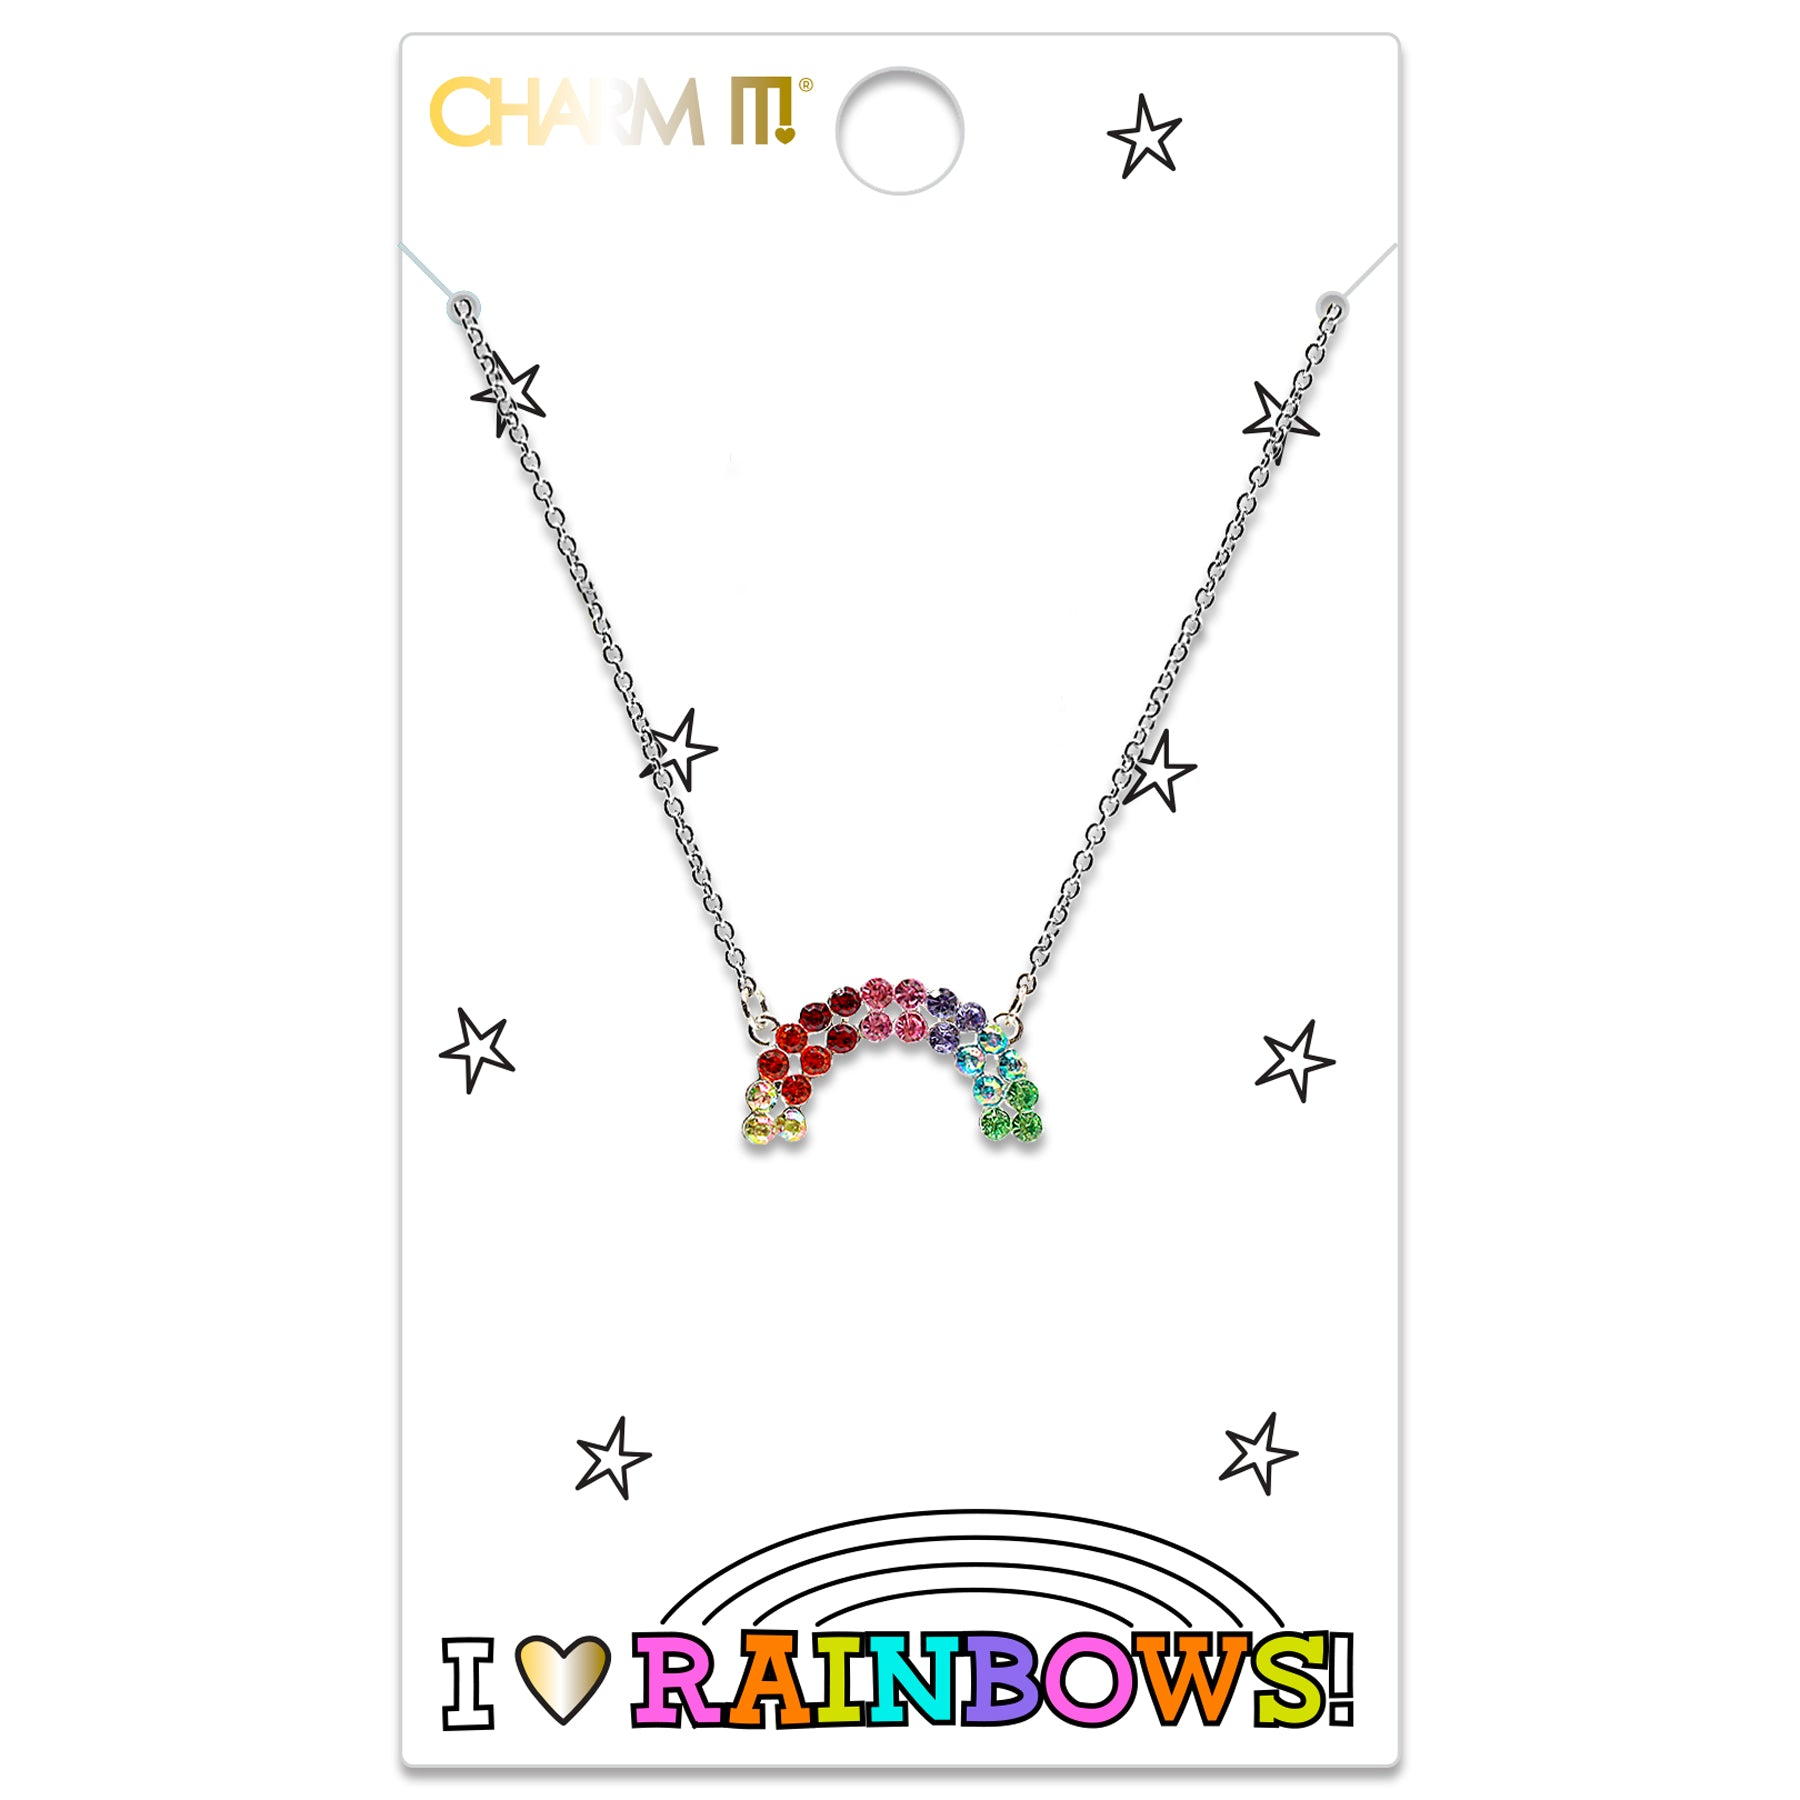 Shop CHARM IT! Rhinestone Rainbow Necklace